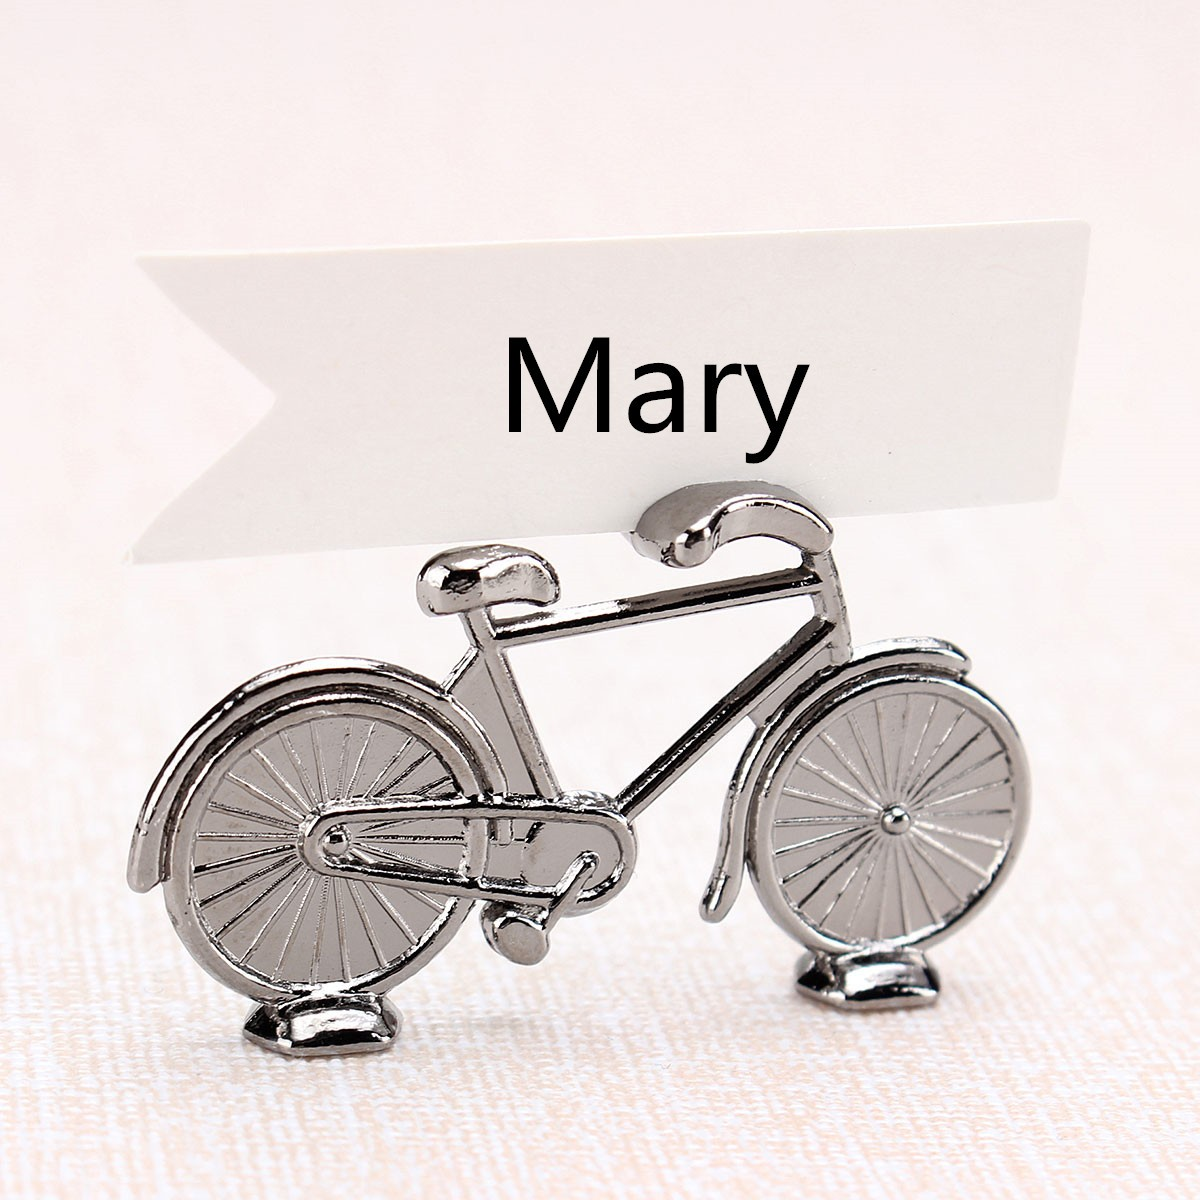 1Pcs Bicycle Shape Name Number Table Place Card Holder Bike Pattern Wedding Party Favor